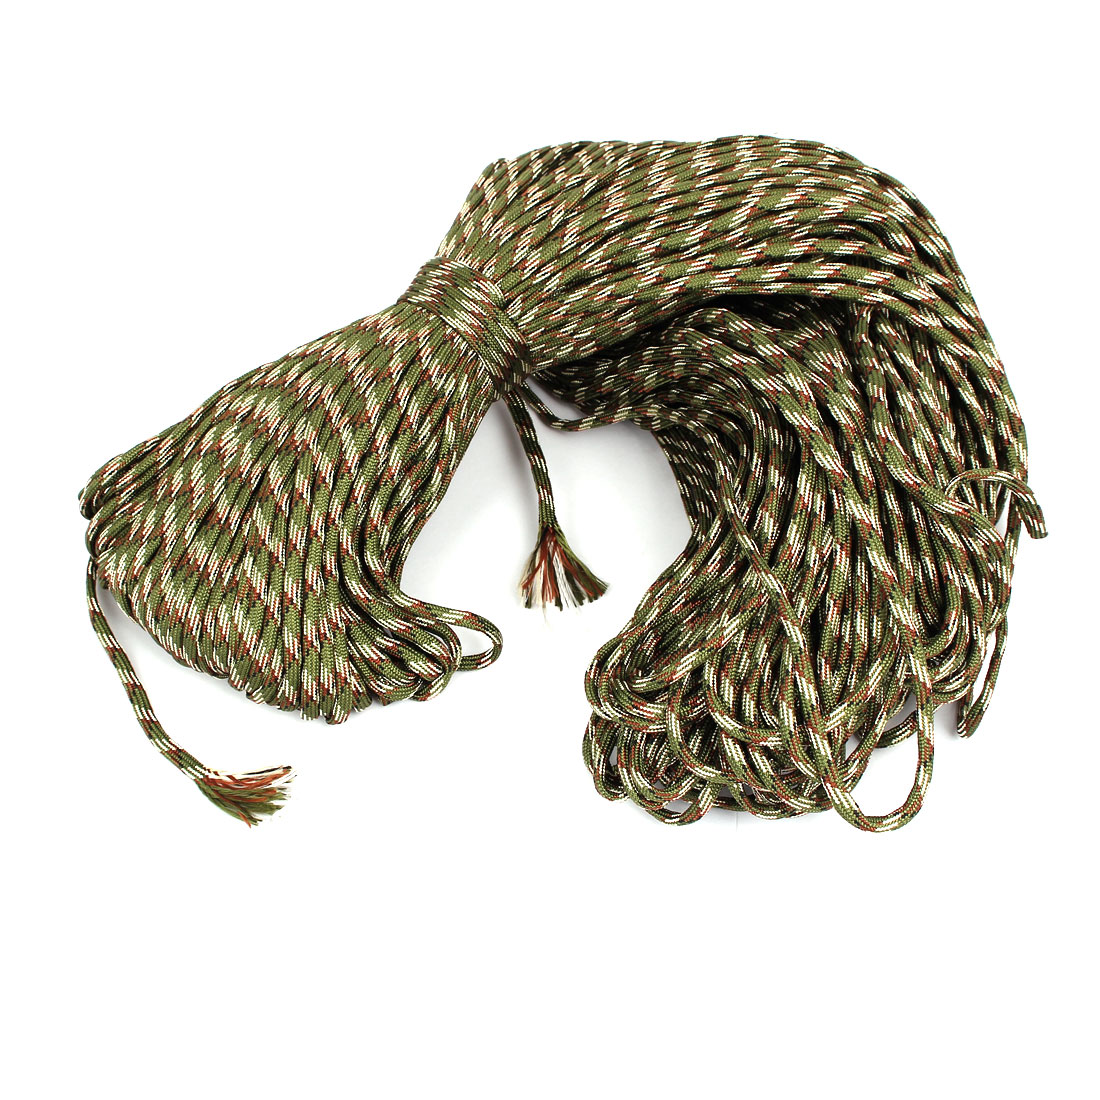 100M Length Outdoor Hiking Umbrella Tied Tents Survival Cord Safety Rope Army Green